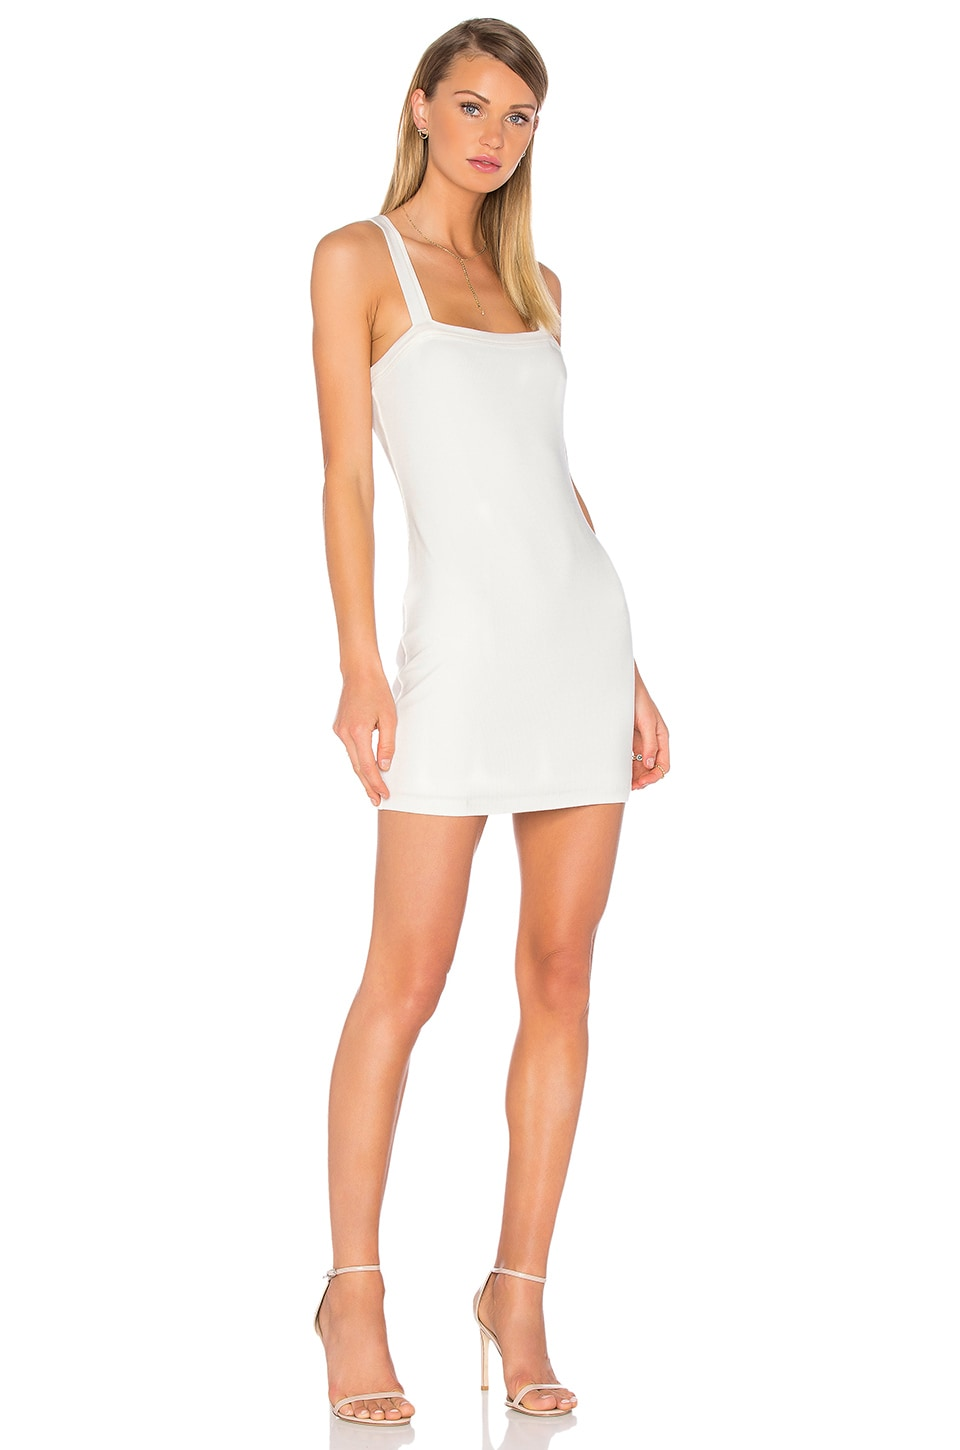 Privacy Please Bradian Dress in Ivory